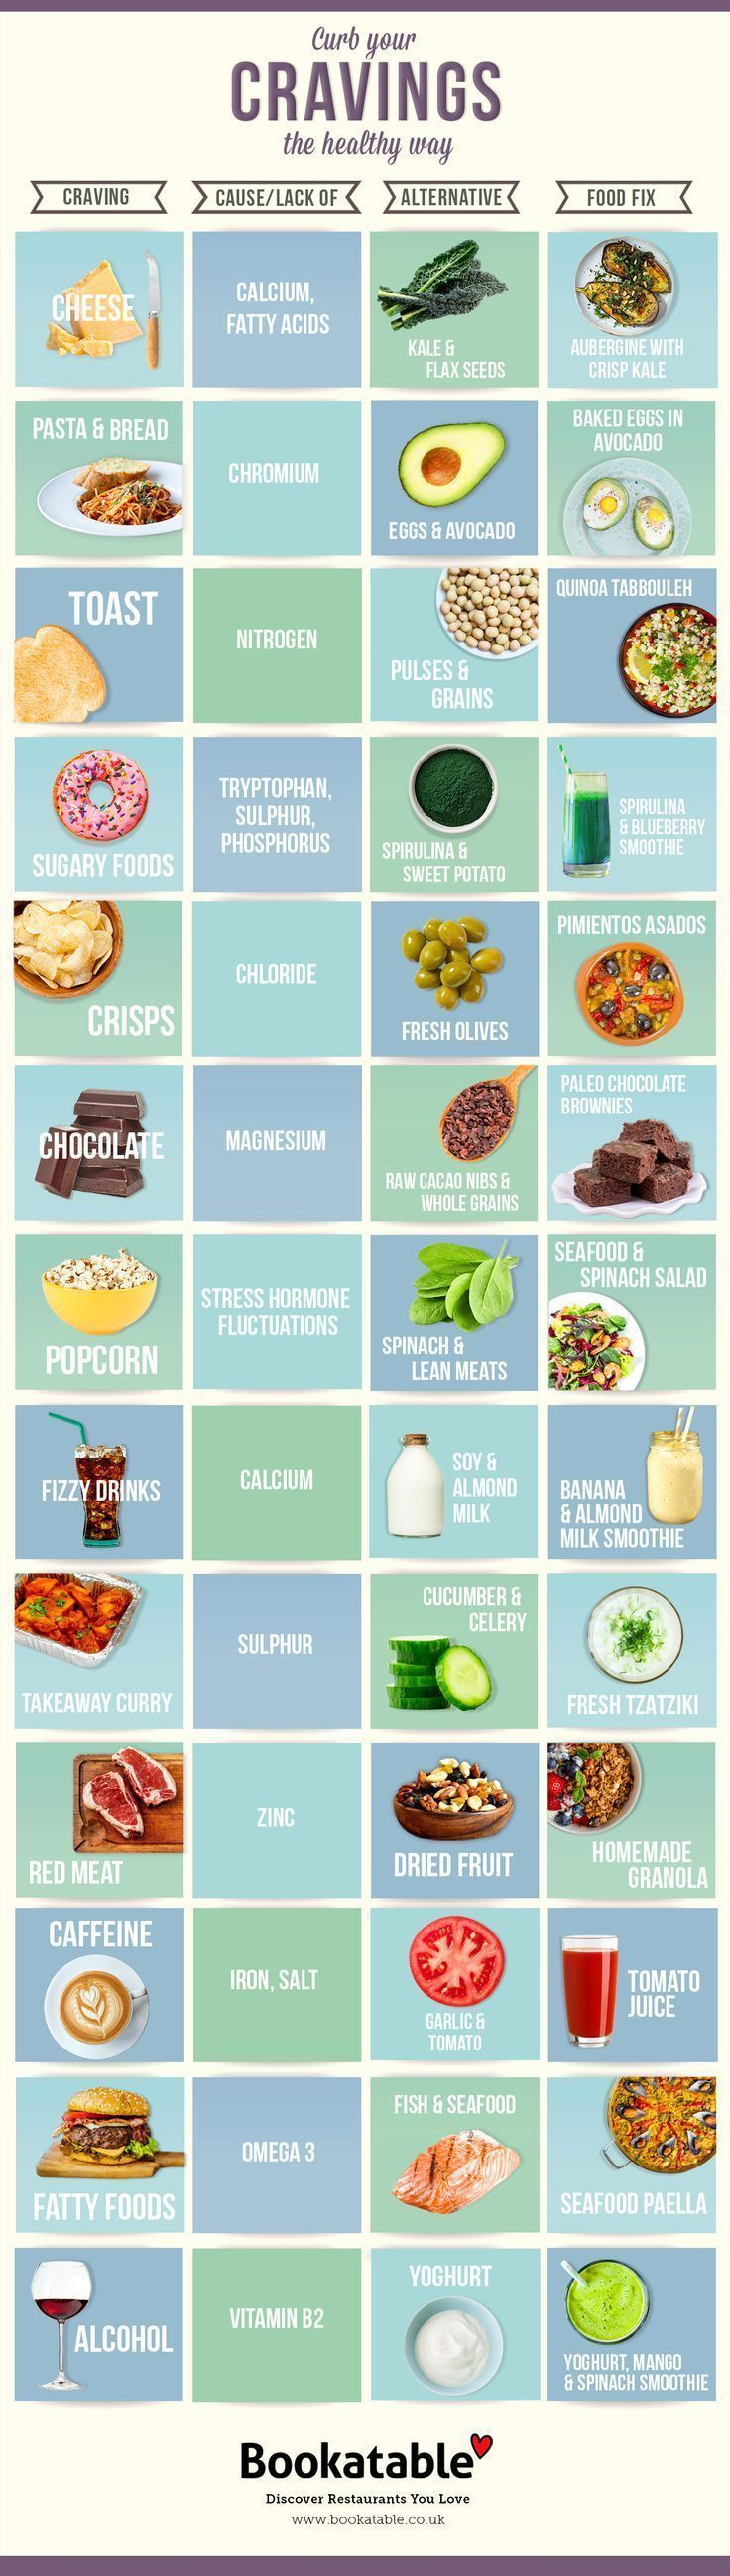 How to Actually Lose Weight Fast & Properly Today (Top 5 Real Proven Ways)…